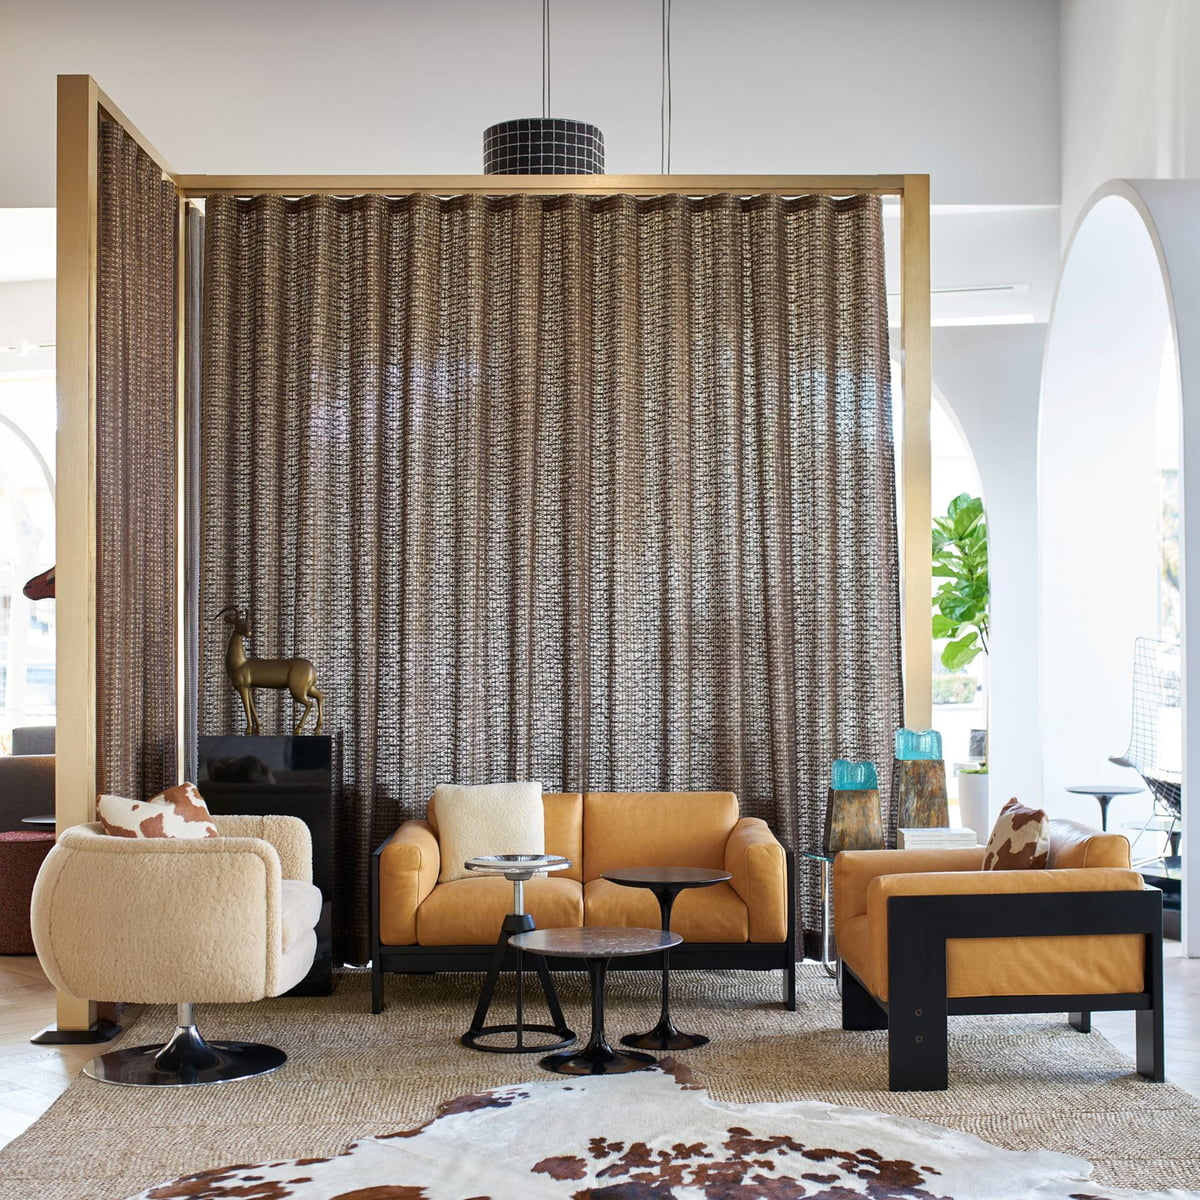 Bastiano Lounge Sessel Von Knoll Connox